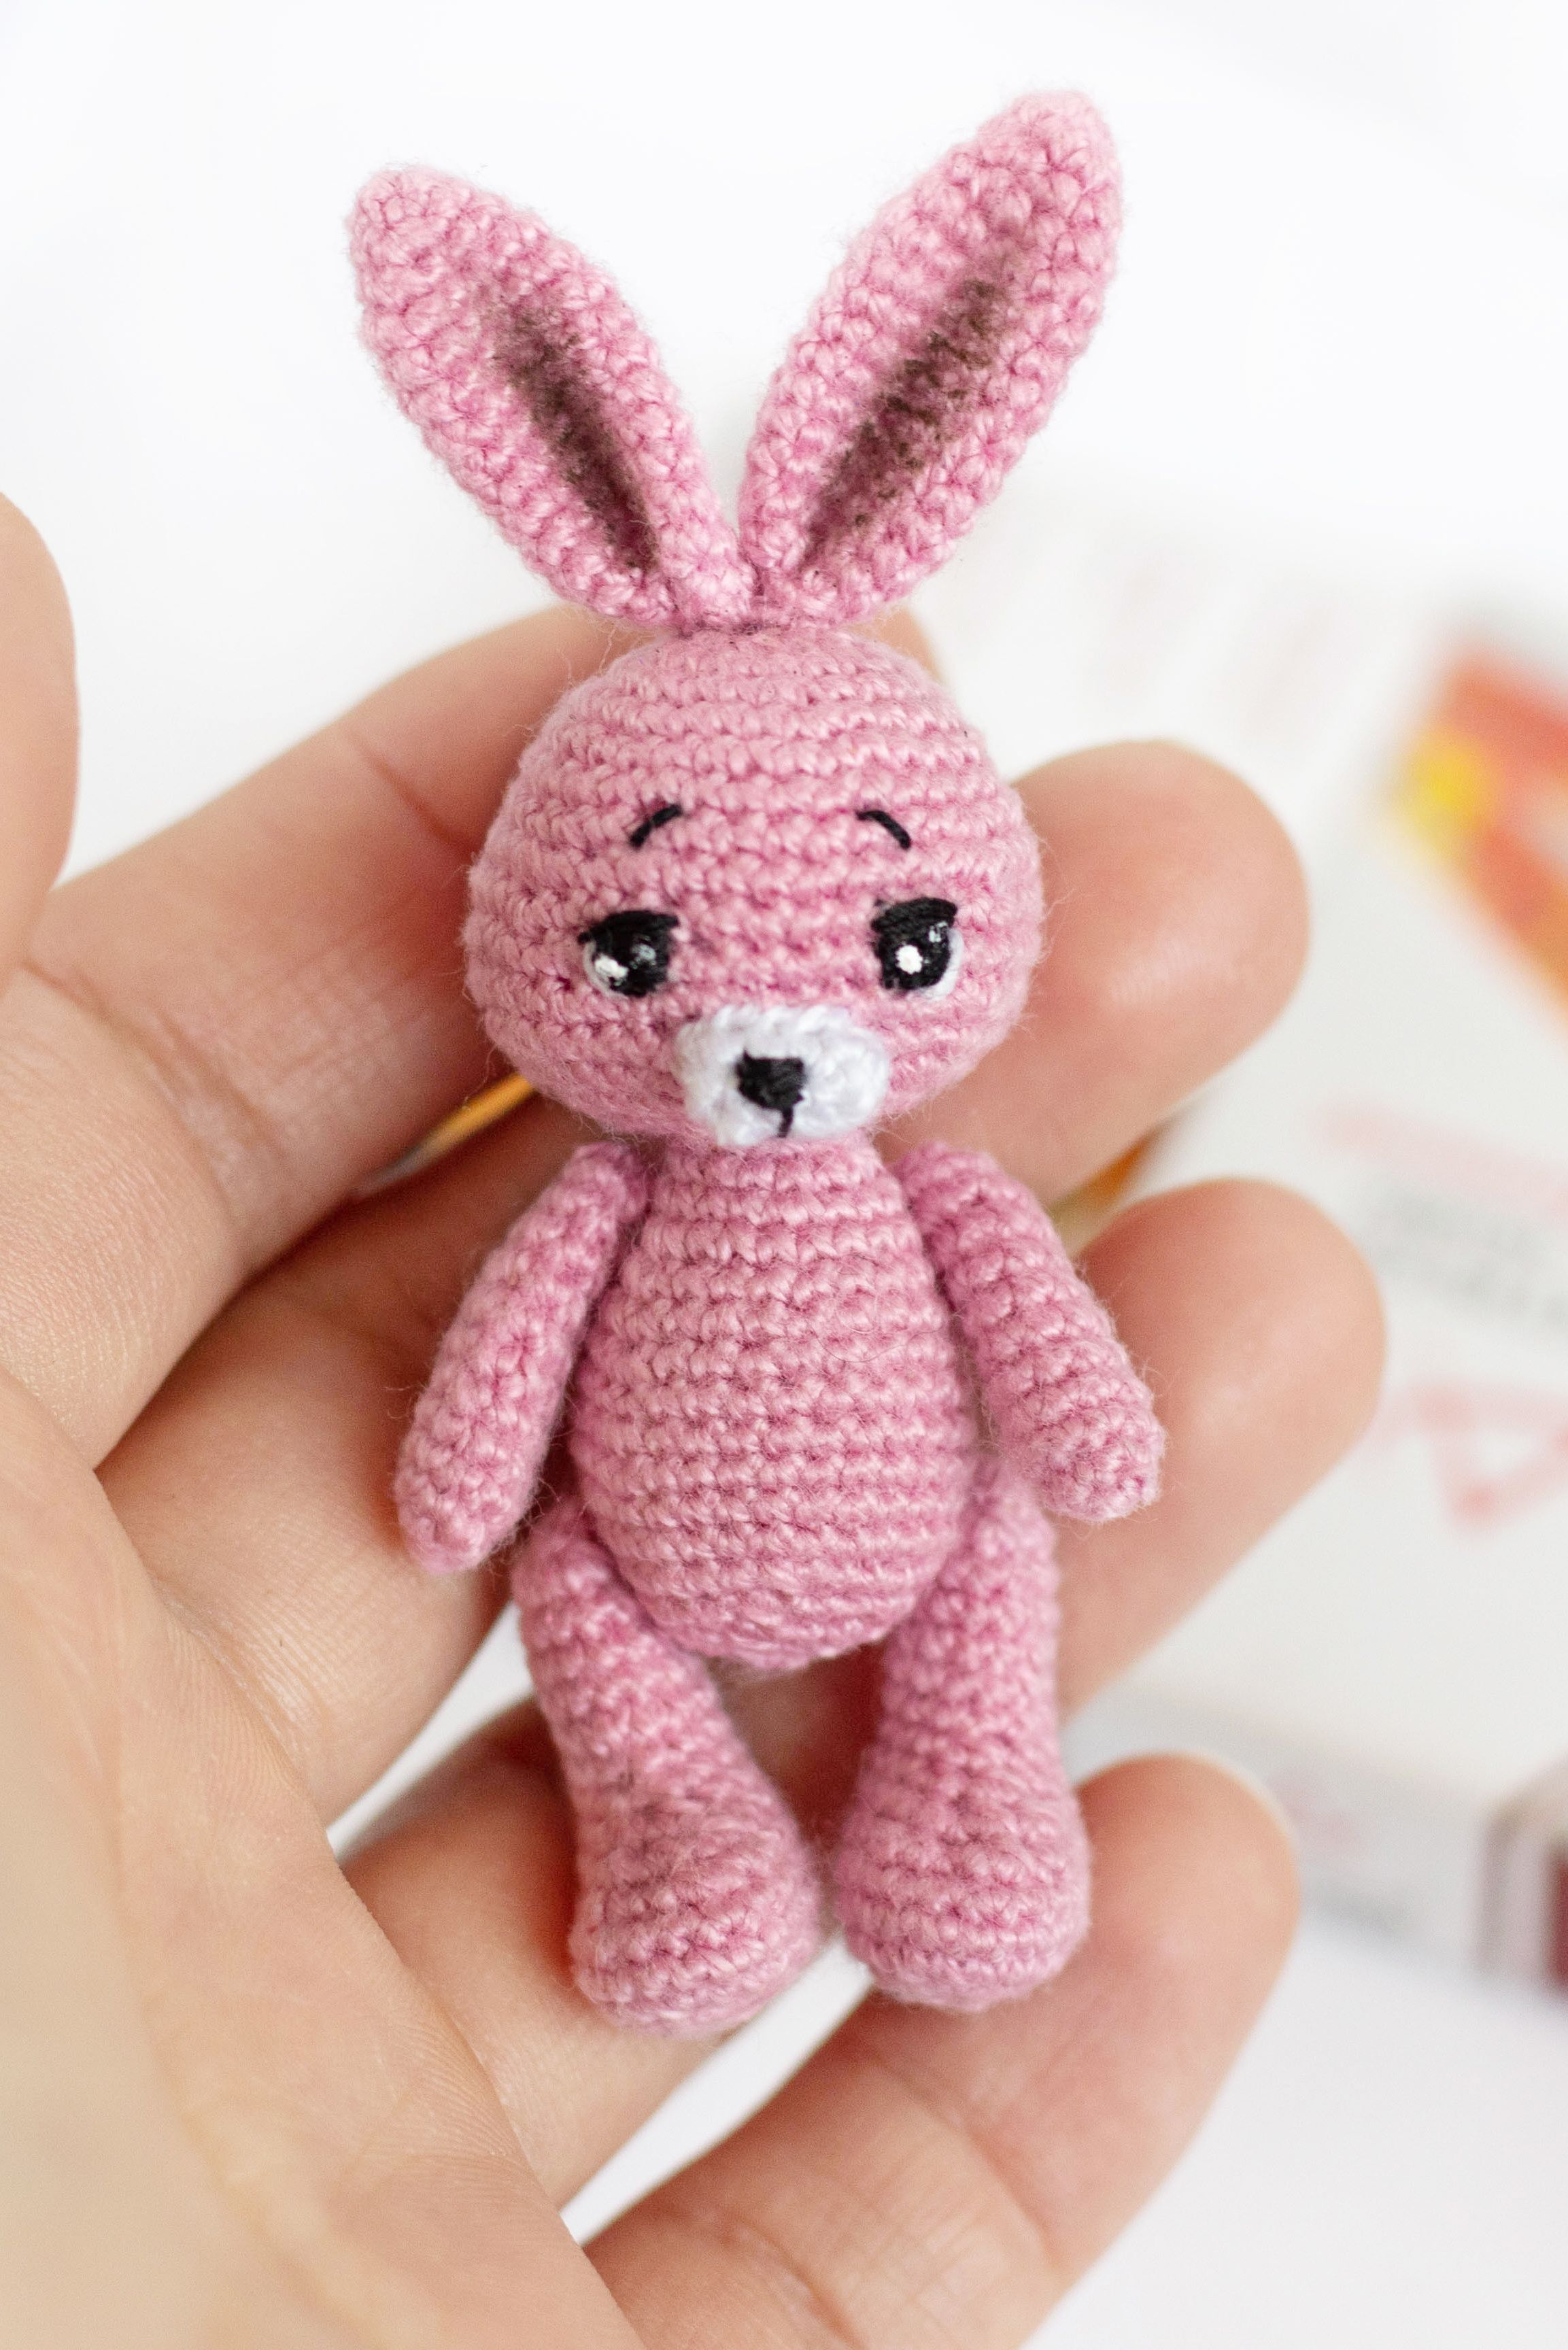 Crochet Amigurumi Bunny Toy Free Patterns Instructions | 3456x2306